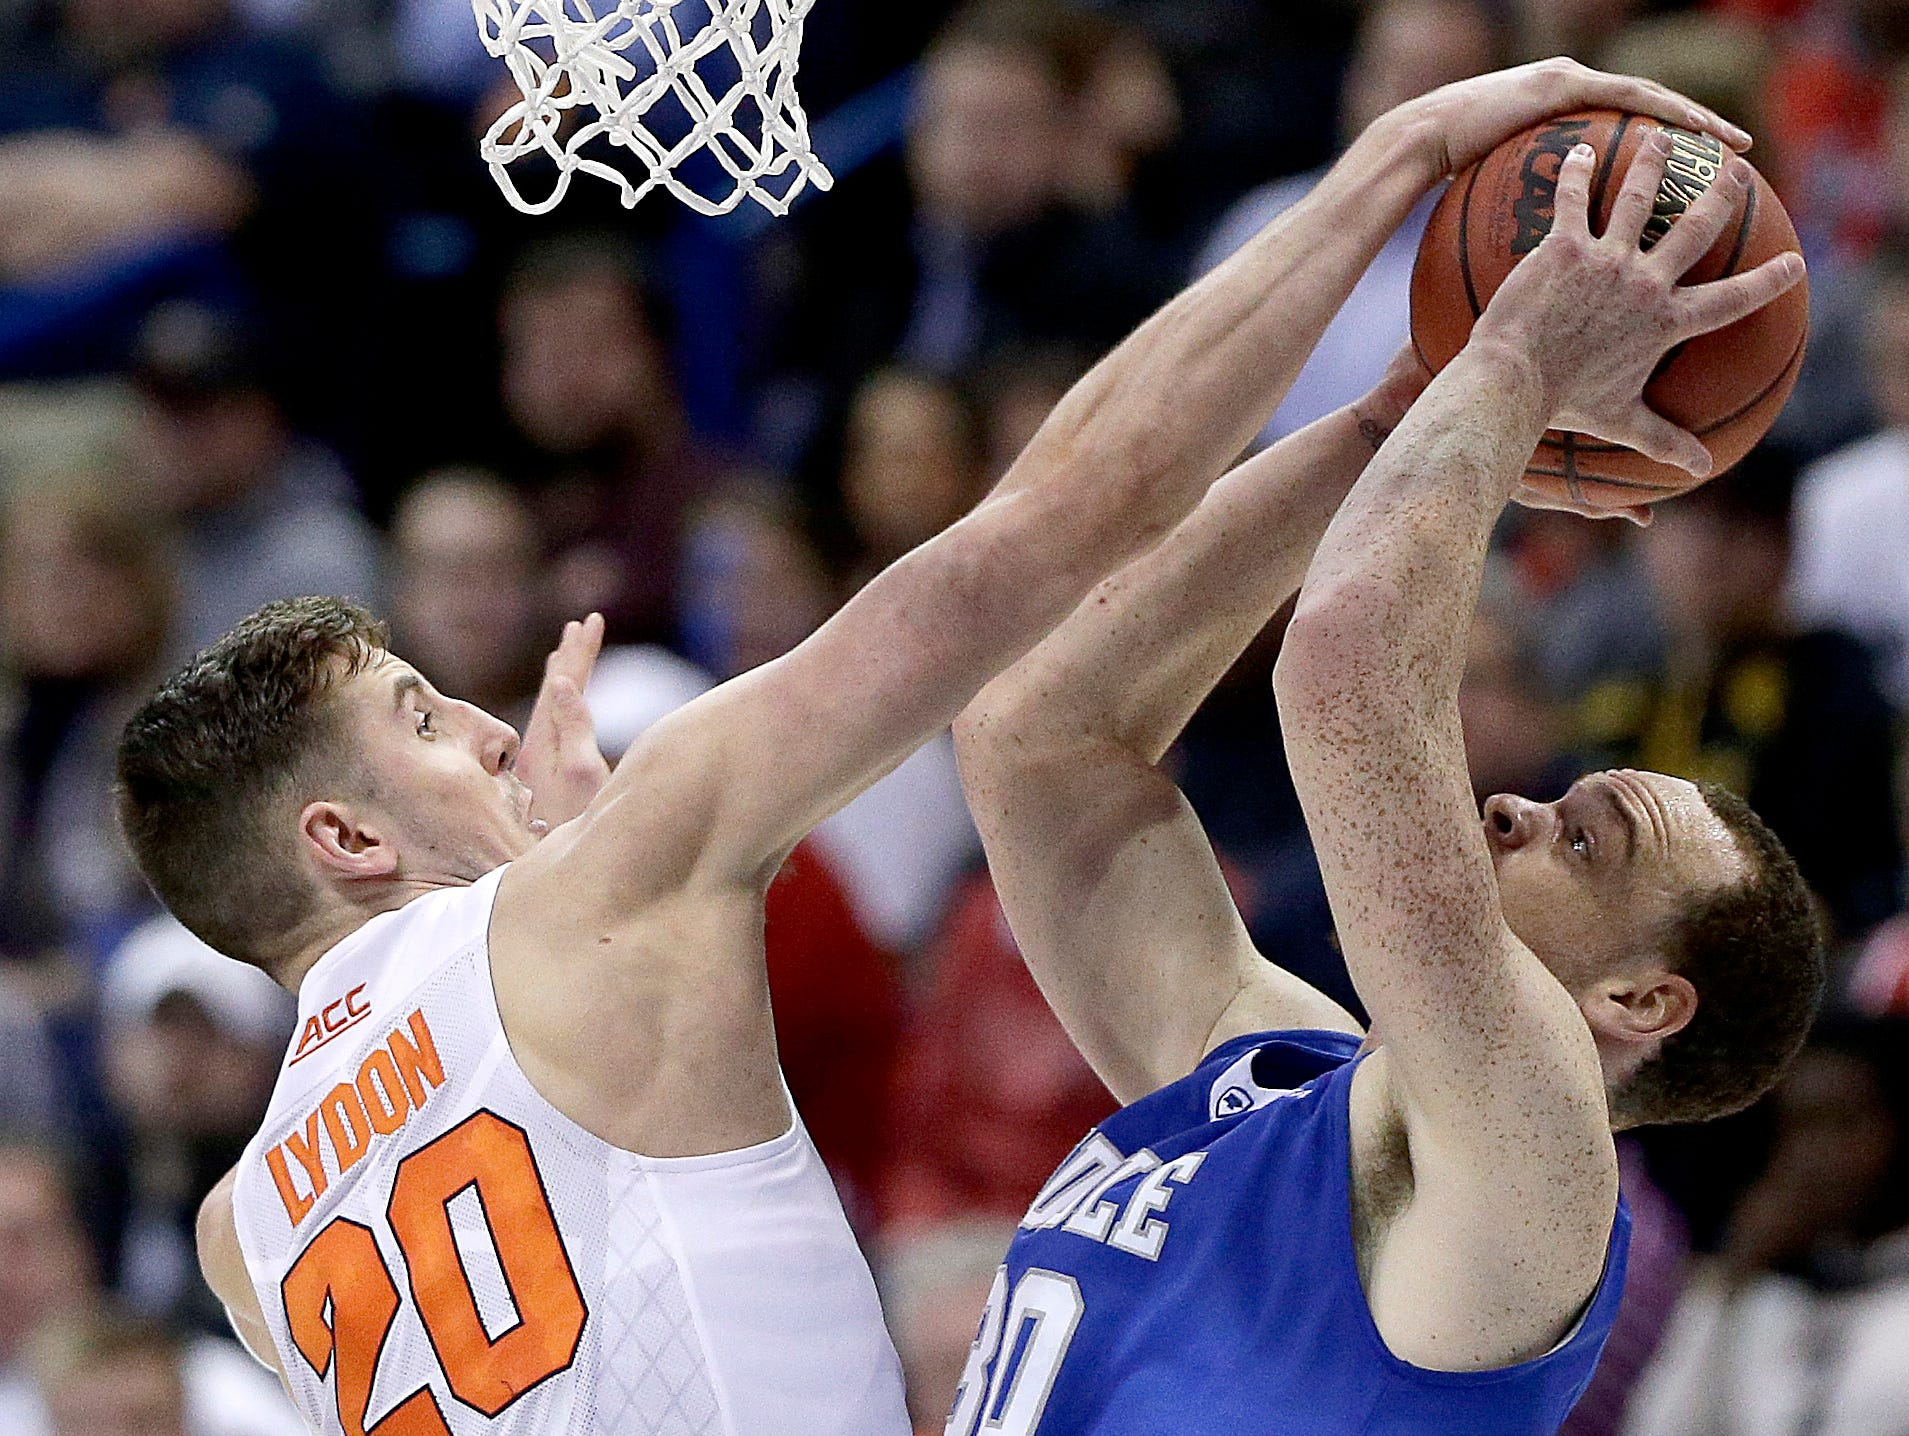 Syracuse's Tyler Lydon, left, blocks a shot by Middle Tennessee's Reggie Upshaw Jr. during the NCAA Tournament on March 20 in St. Louis.